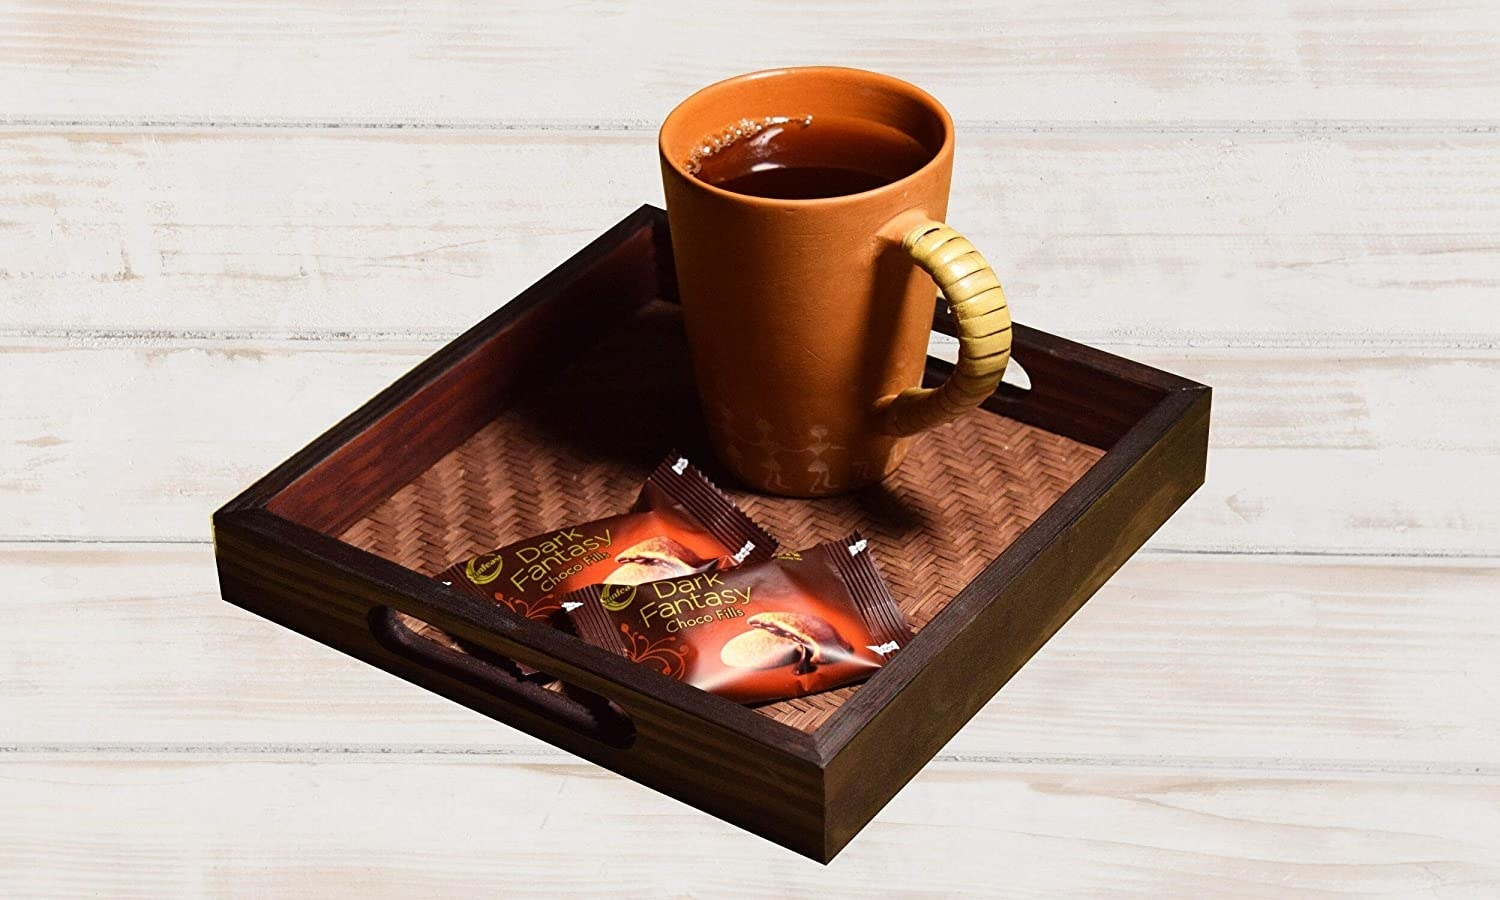 Tray with cookies and a coffee mug on it.